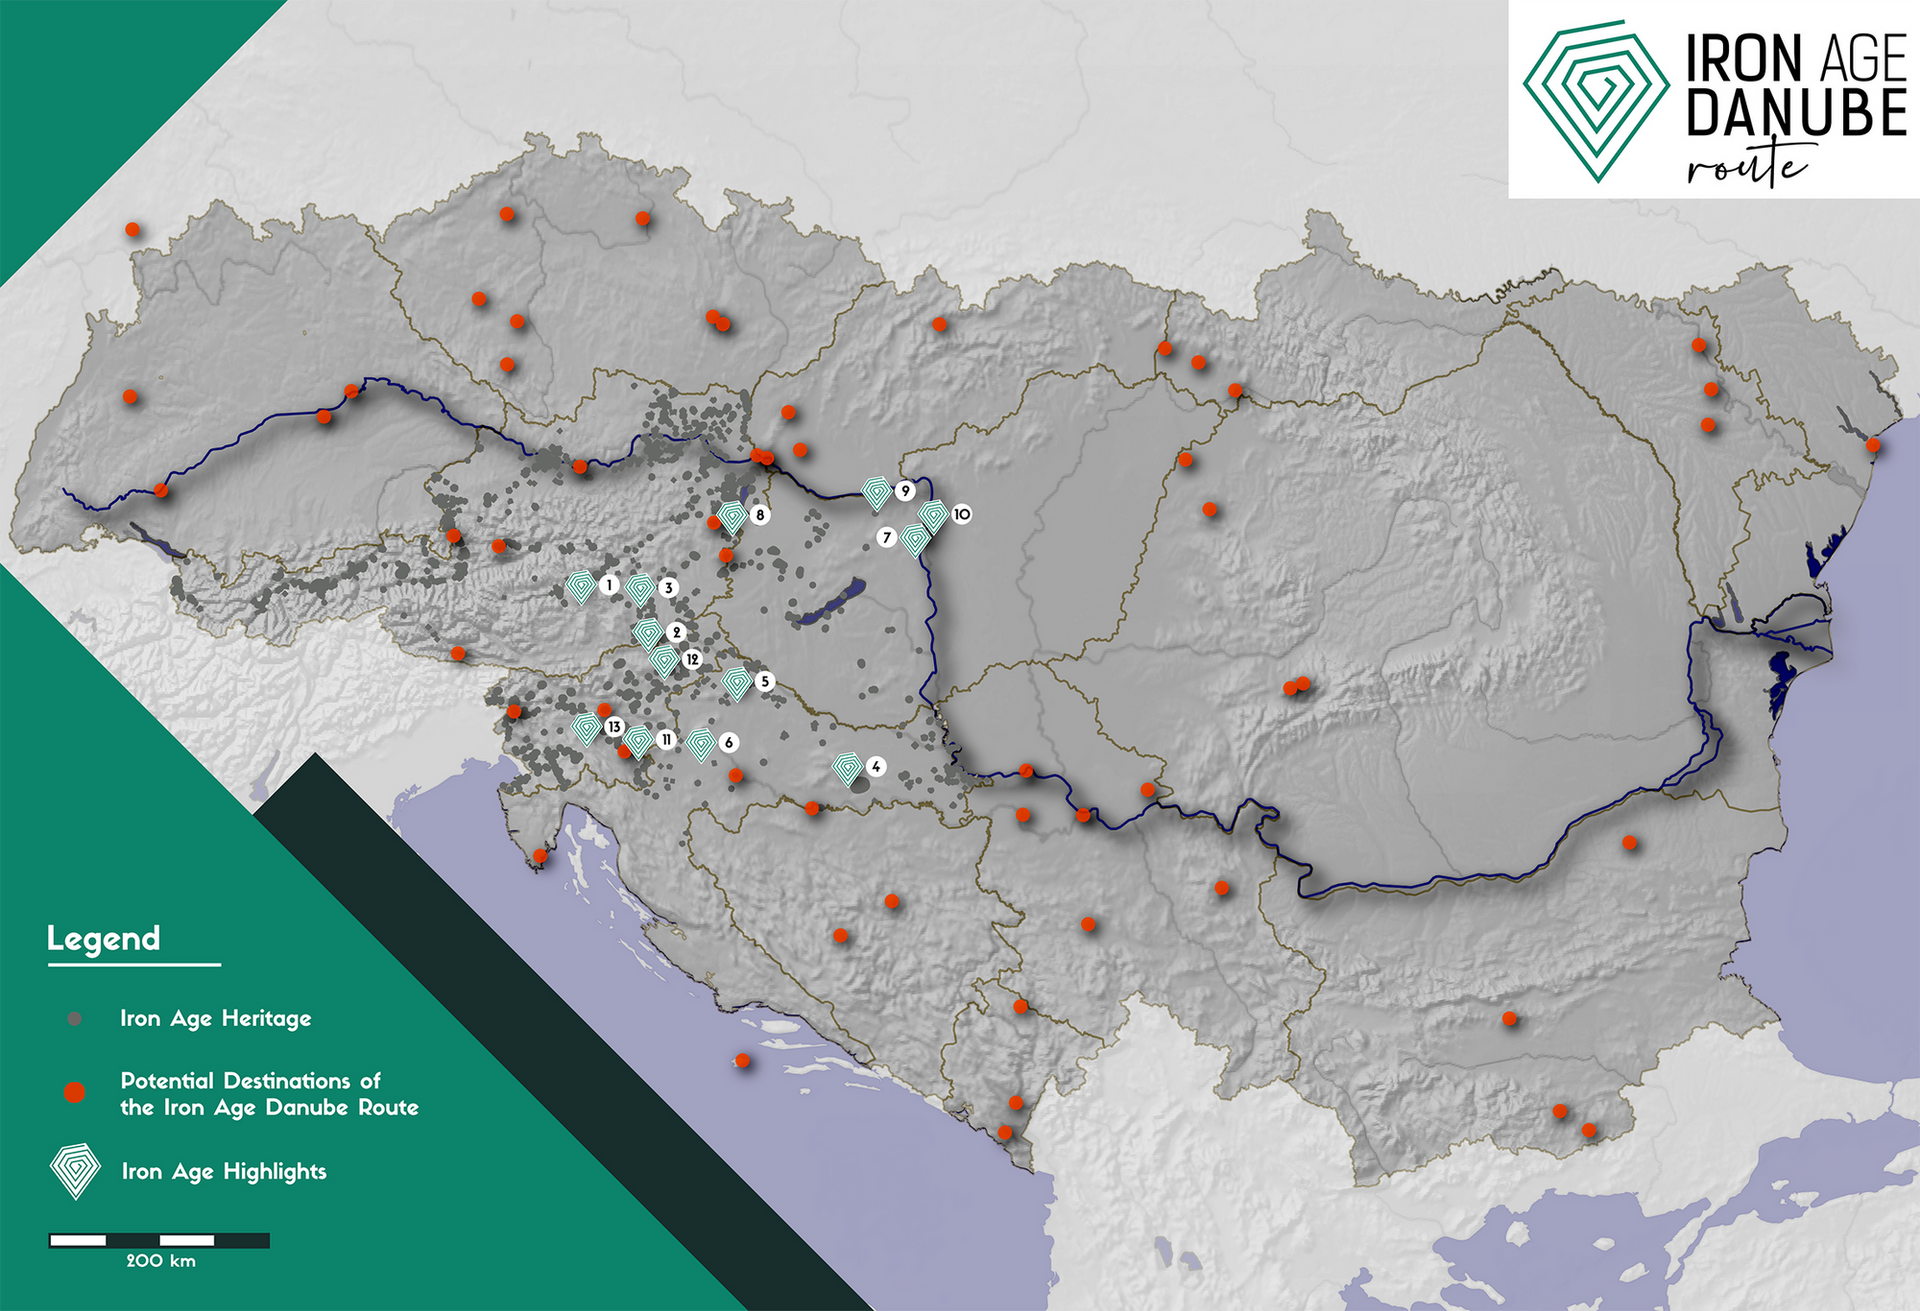 TOURIST MAP OF THE IRON AGE DANUBE ROUTE